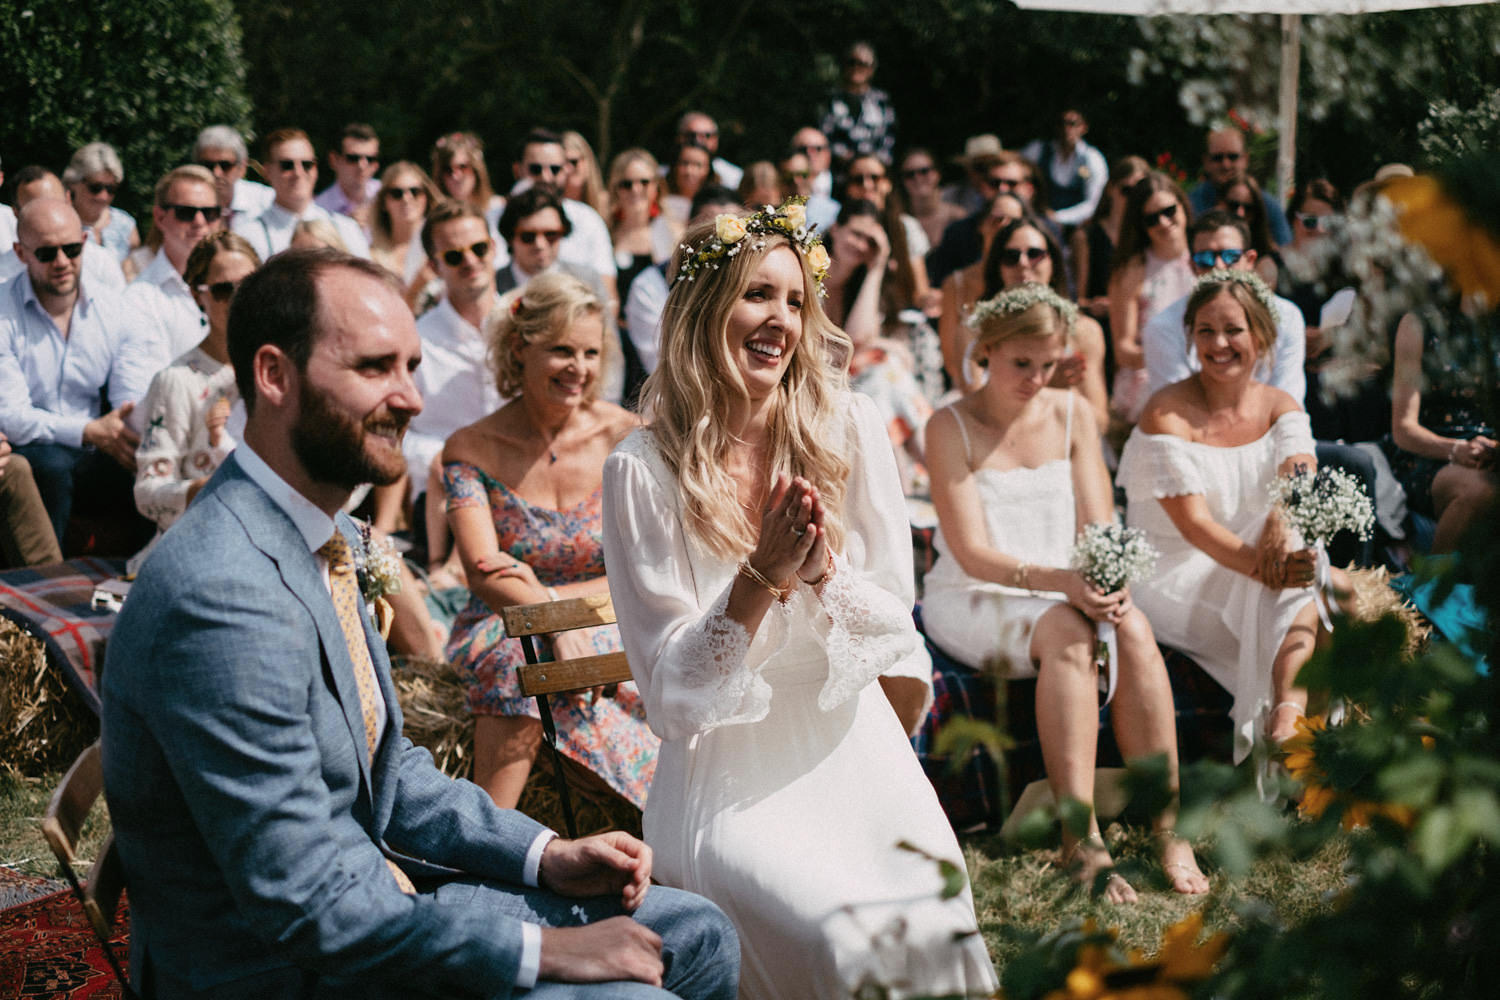 131-wedding-ceremony-in-the-south-of-france.jpg